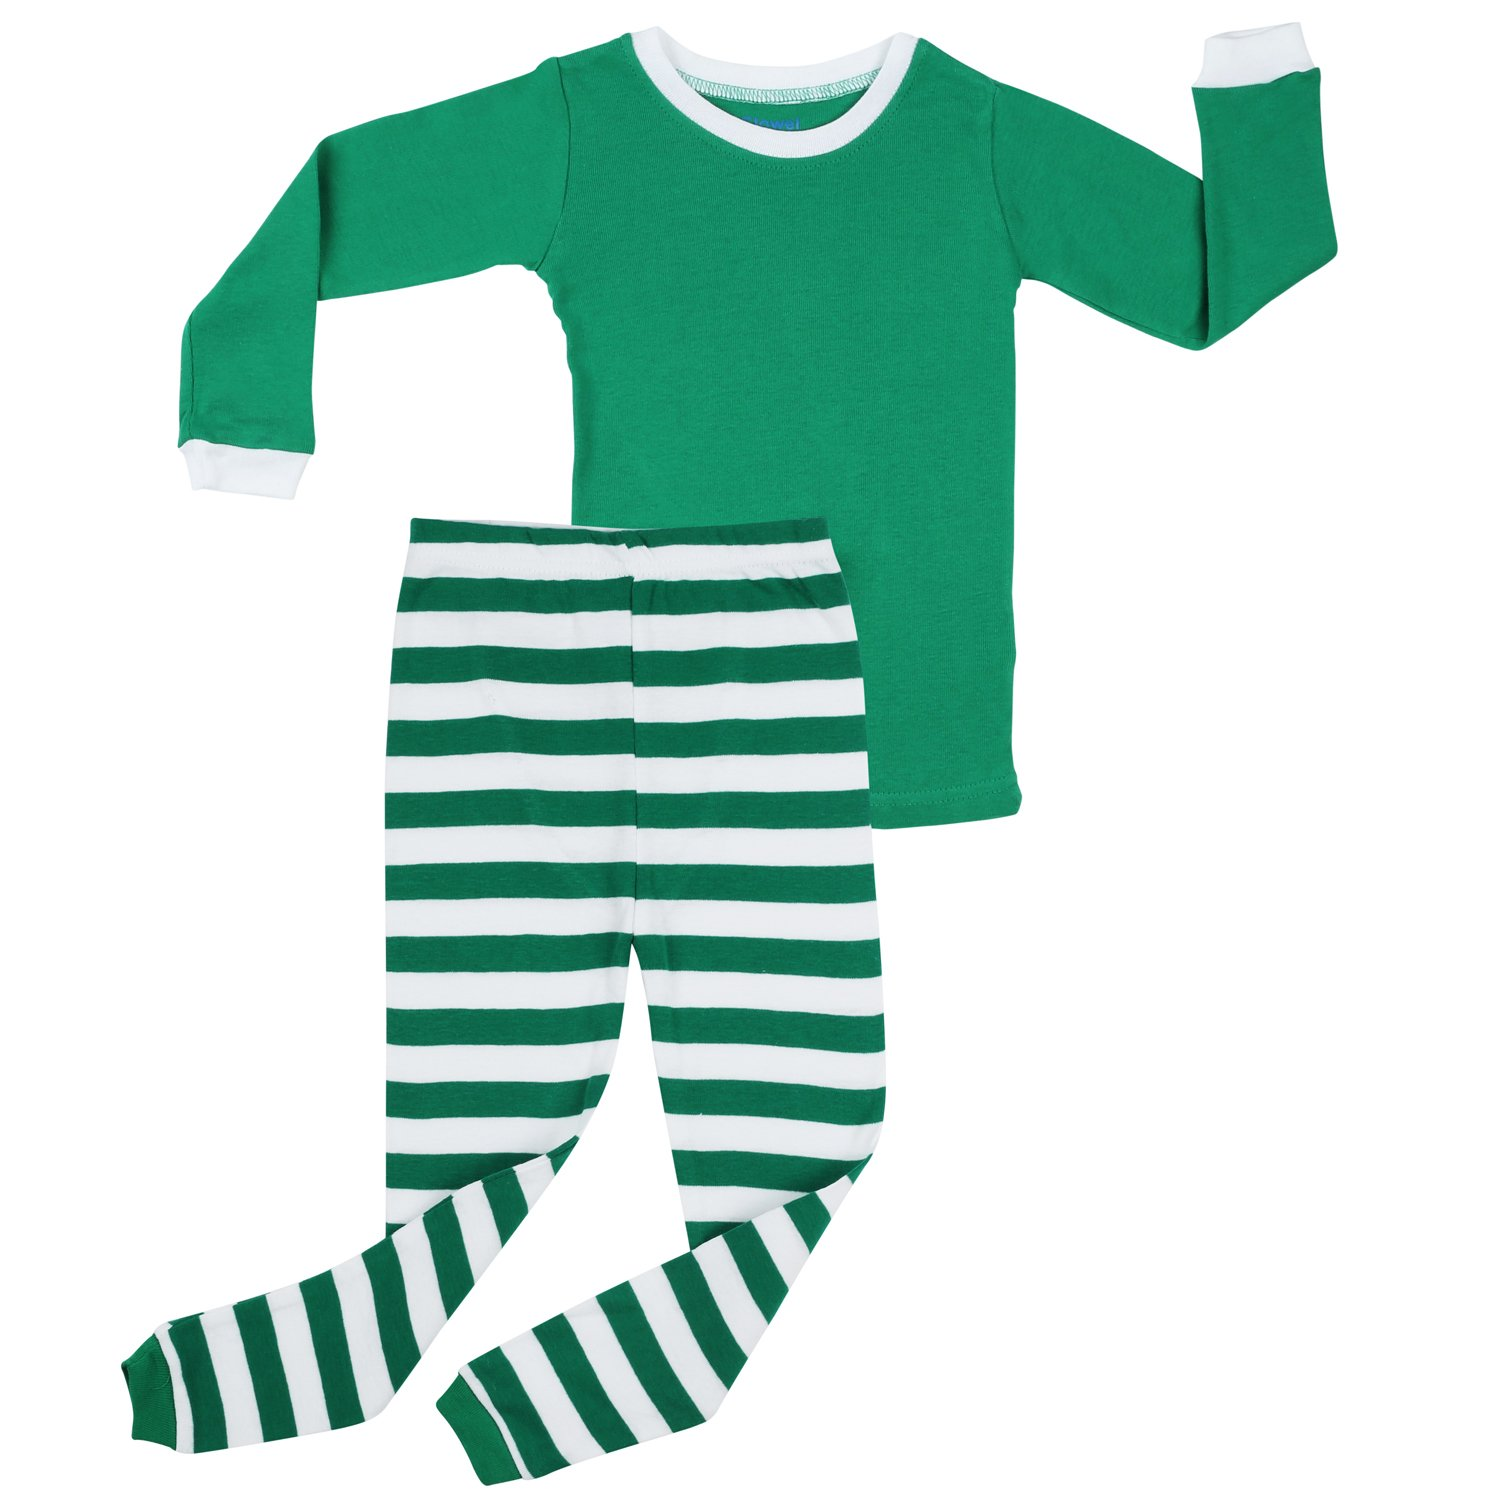 Elowel ボーイズ ガールズ クリスマス Top ストライプ ボーイズ 2点セット クリスマス キッズ パジャマ 綿100% 6M-12Y 6 - 12 Months Green Top & Green White Pants B076GS4PXD, 大阪府:e2645550 --- sharoshka.org